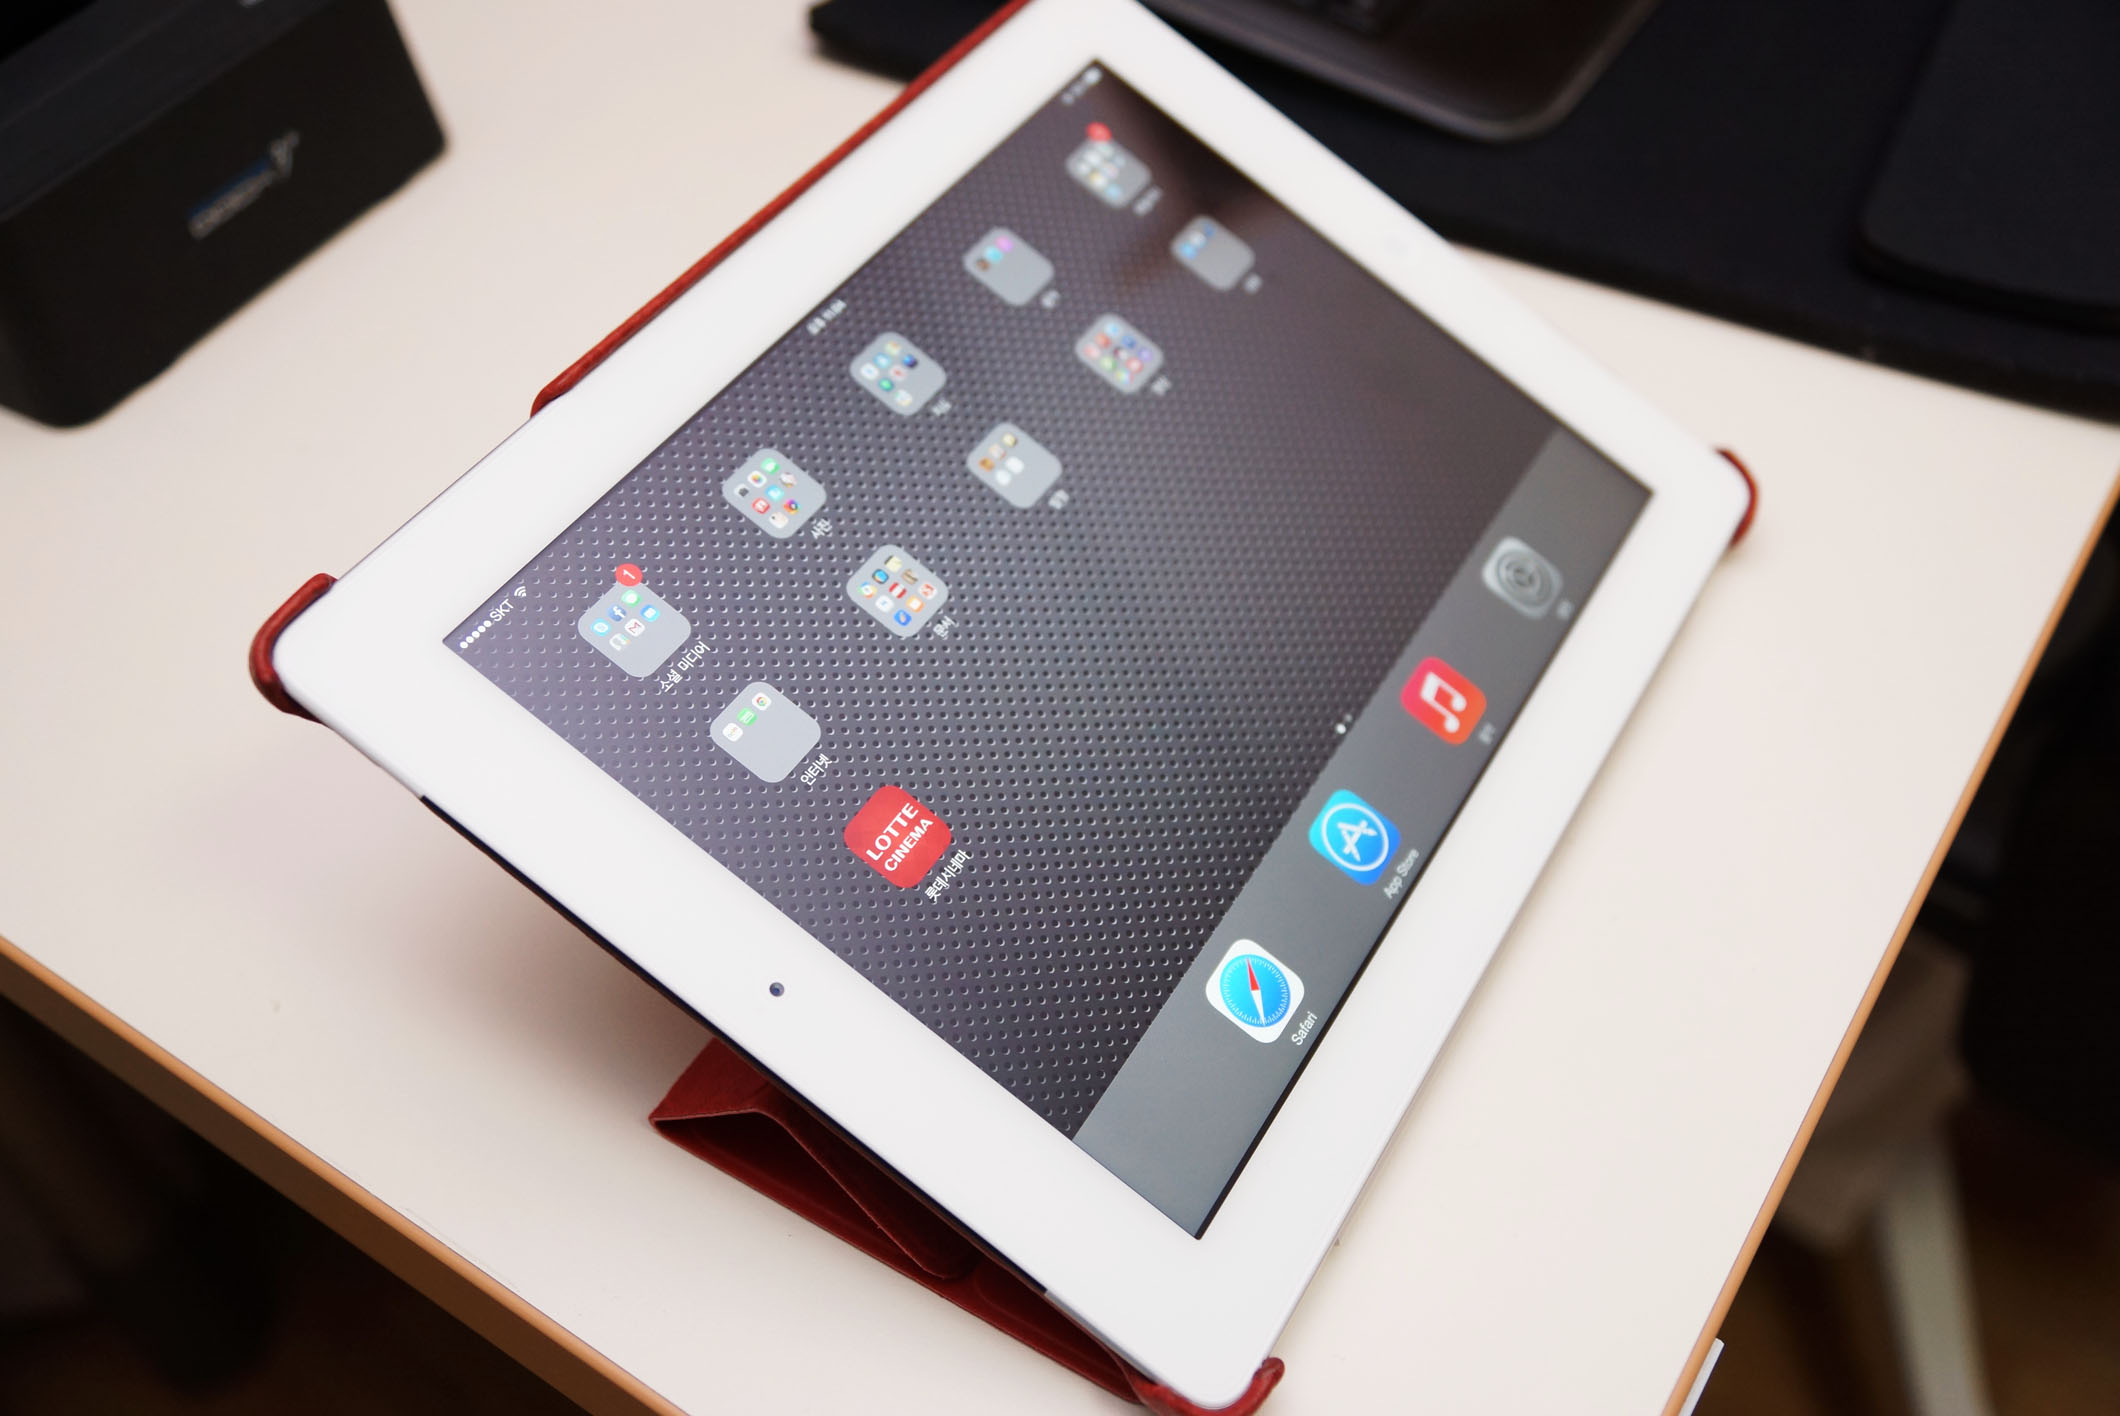 iPad 4 and Red Color